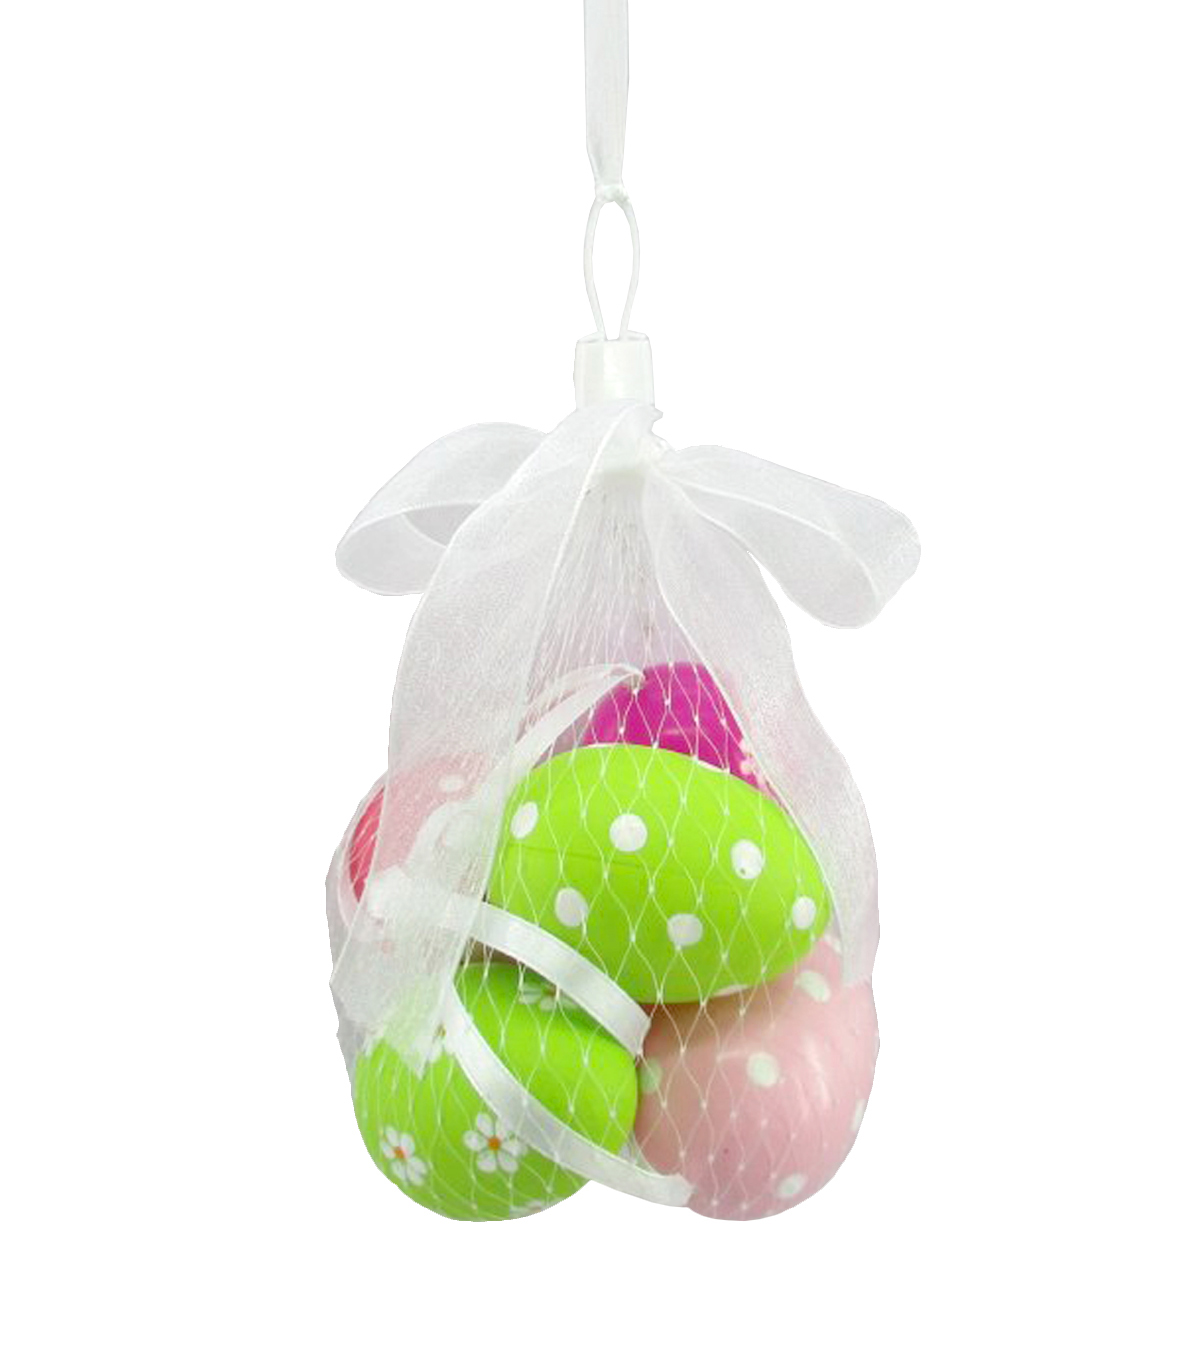 Easter 6pcs Eggs In Mesh Bag-Bright Pattern